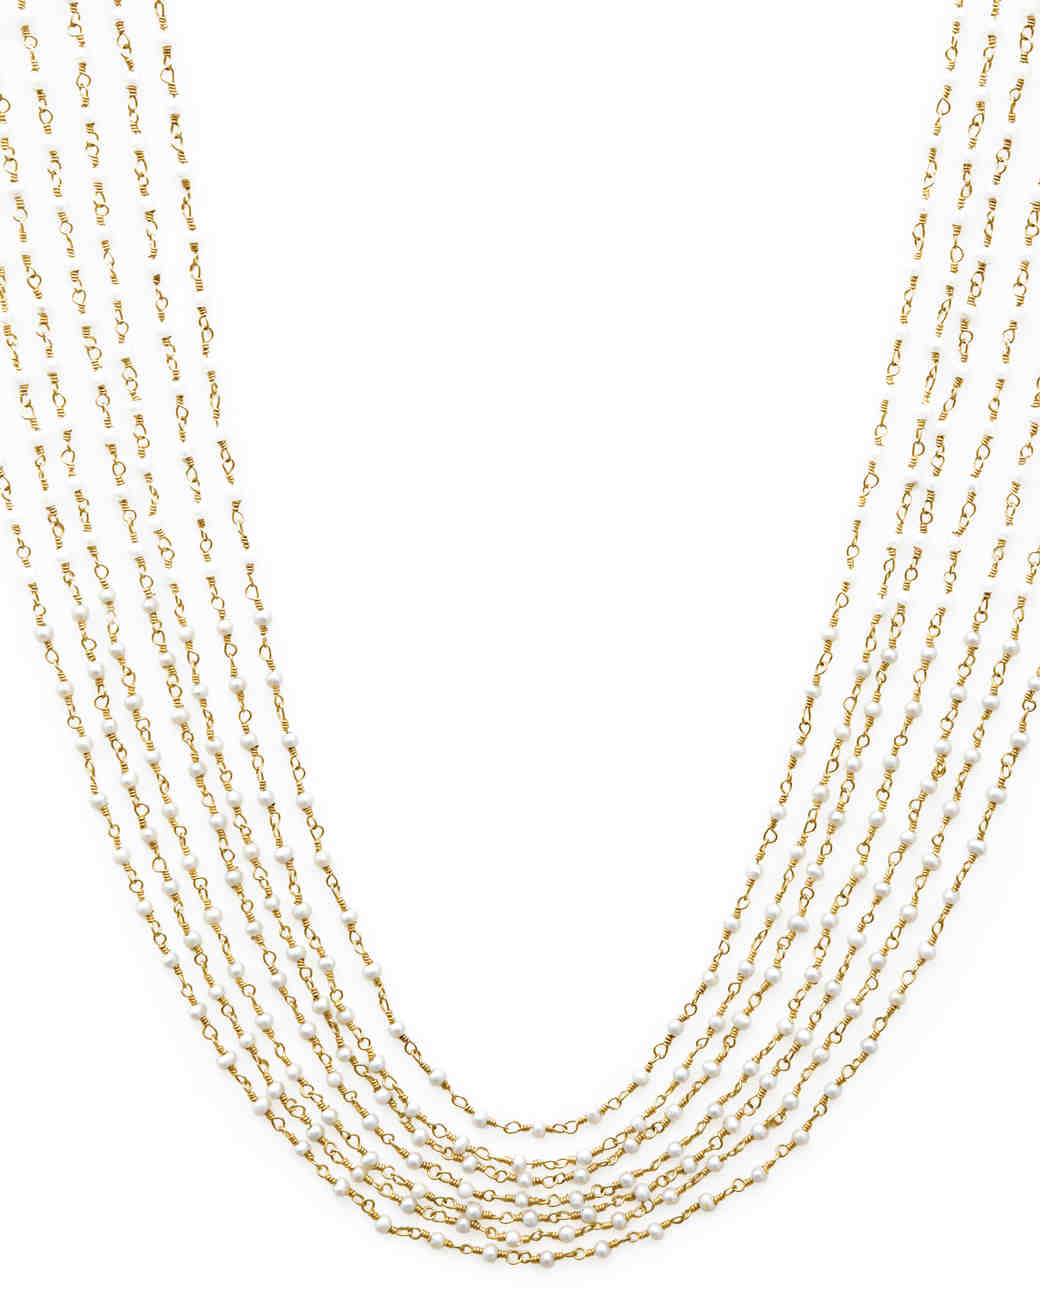 necklace1-sum11mwd107073a.jpg